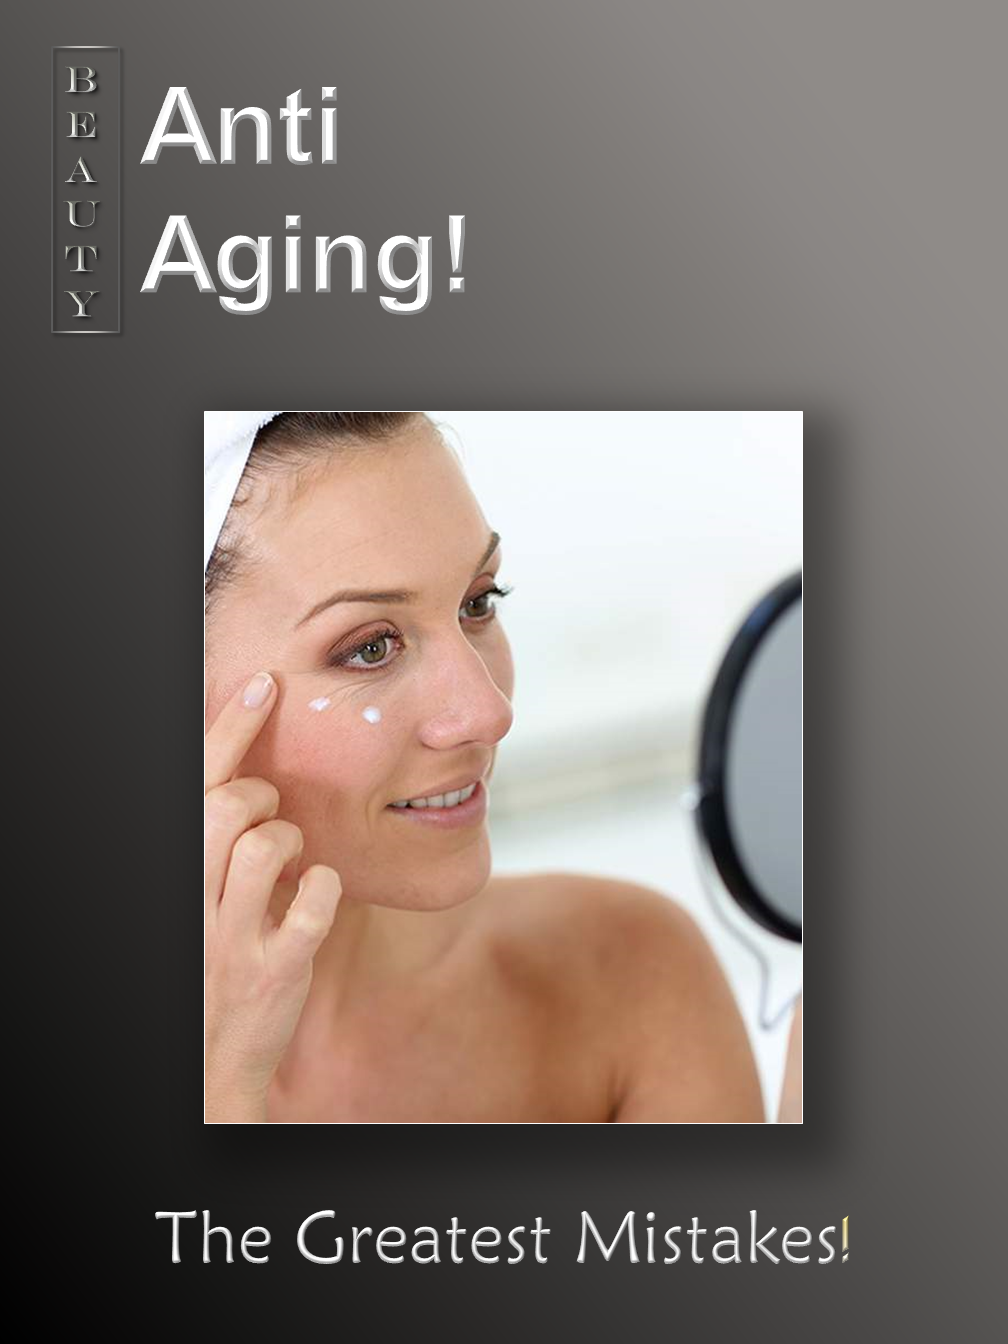 Anti-Aging Mistakes